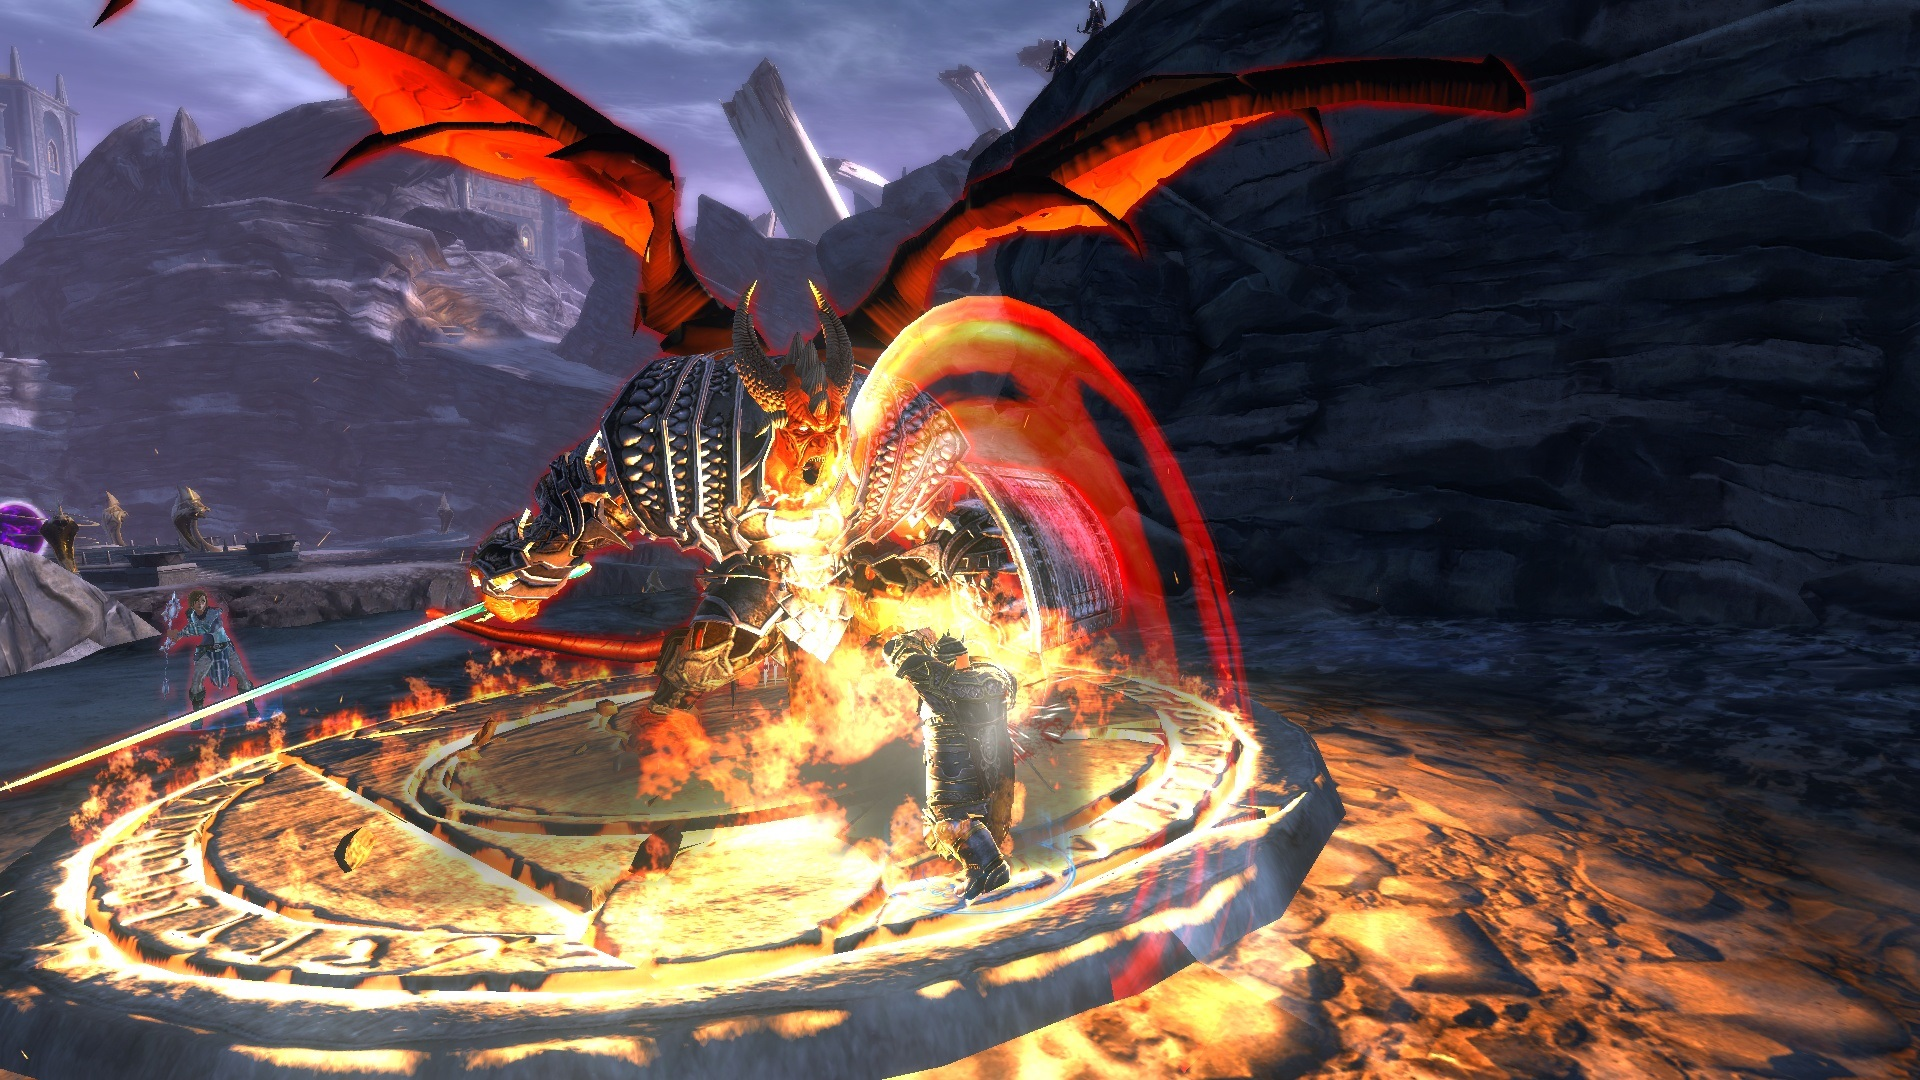 neverwinter fire giant - photo #49